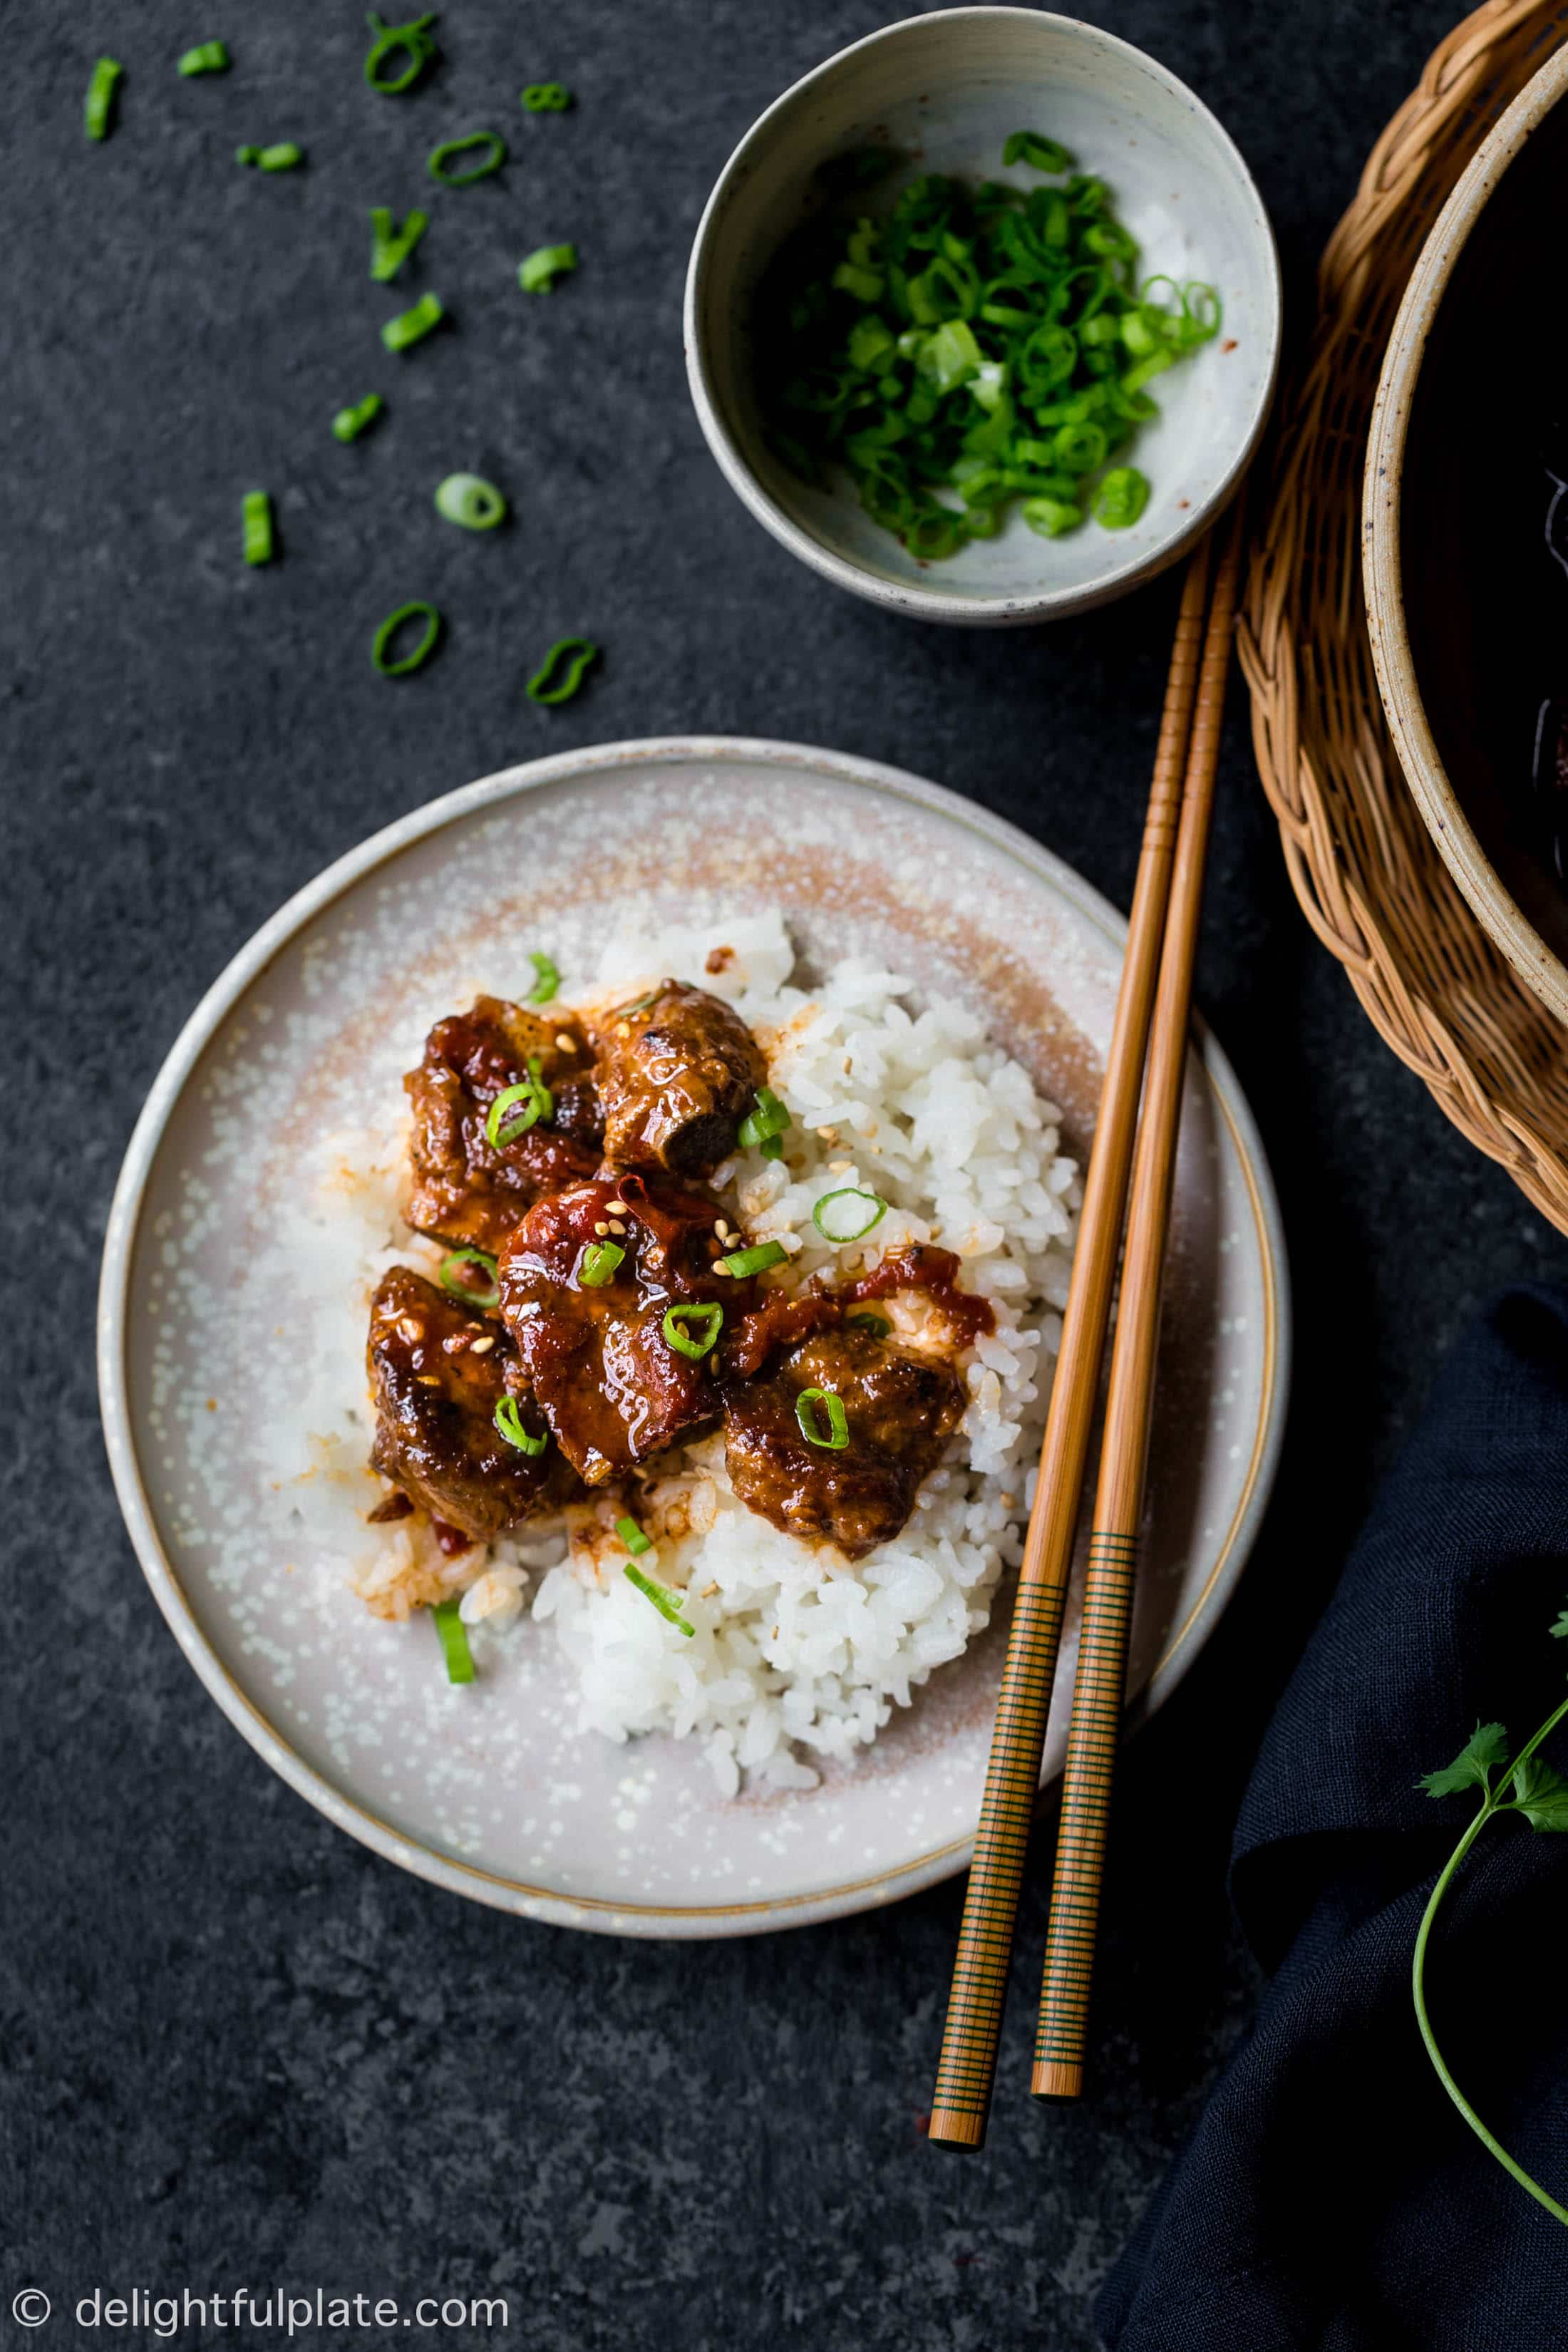 Vietnamese Sweet and Sour Pork Ribs (Suon Xao Chua Ngot) is a super yummy dish with tender ribs and mouthwatering sauce. Serve as a main dish with rice.